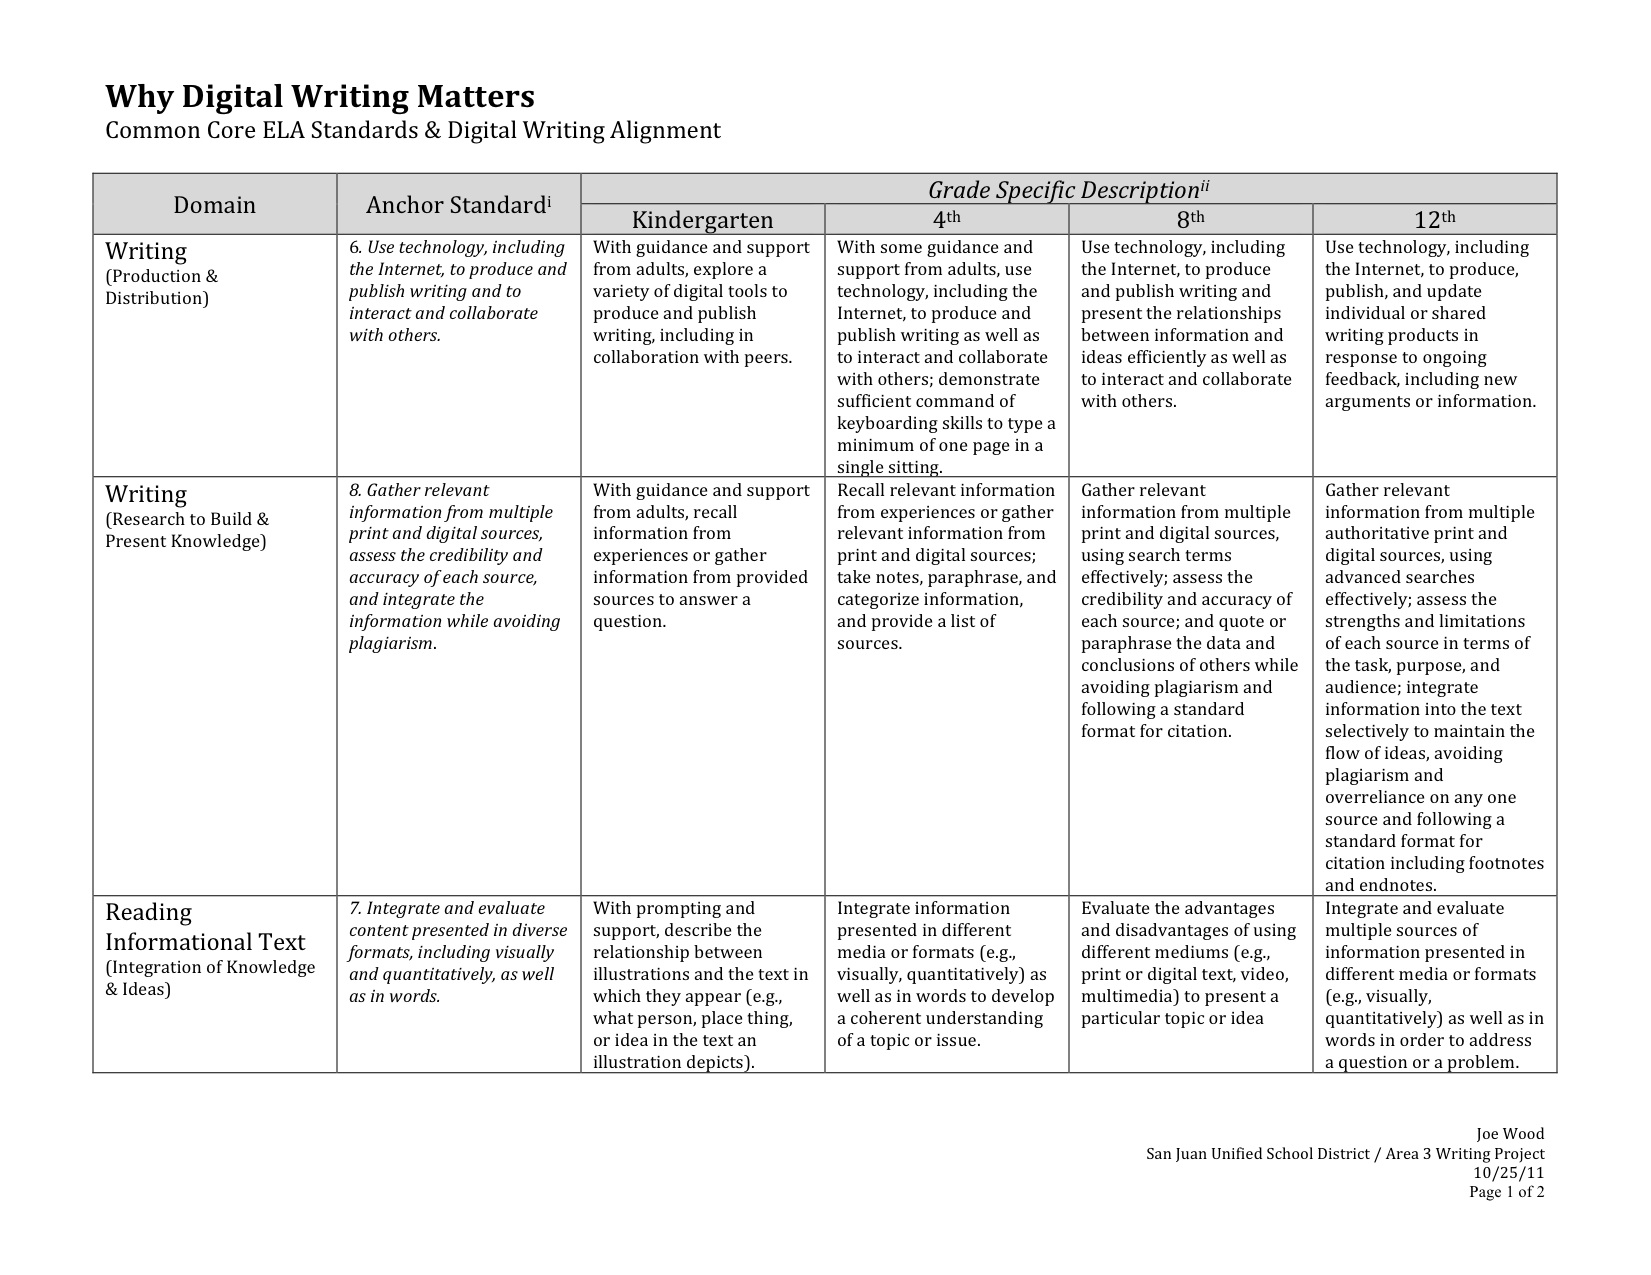 003 Research Paper Rubric Middle School Why Digital Writing Matters According To The Common Core Ela Astounding Science History Full